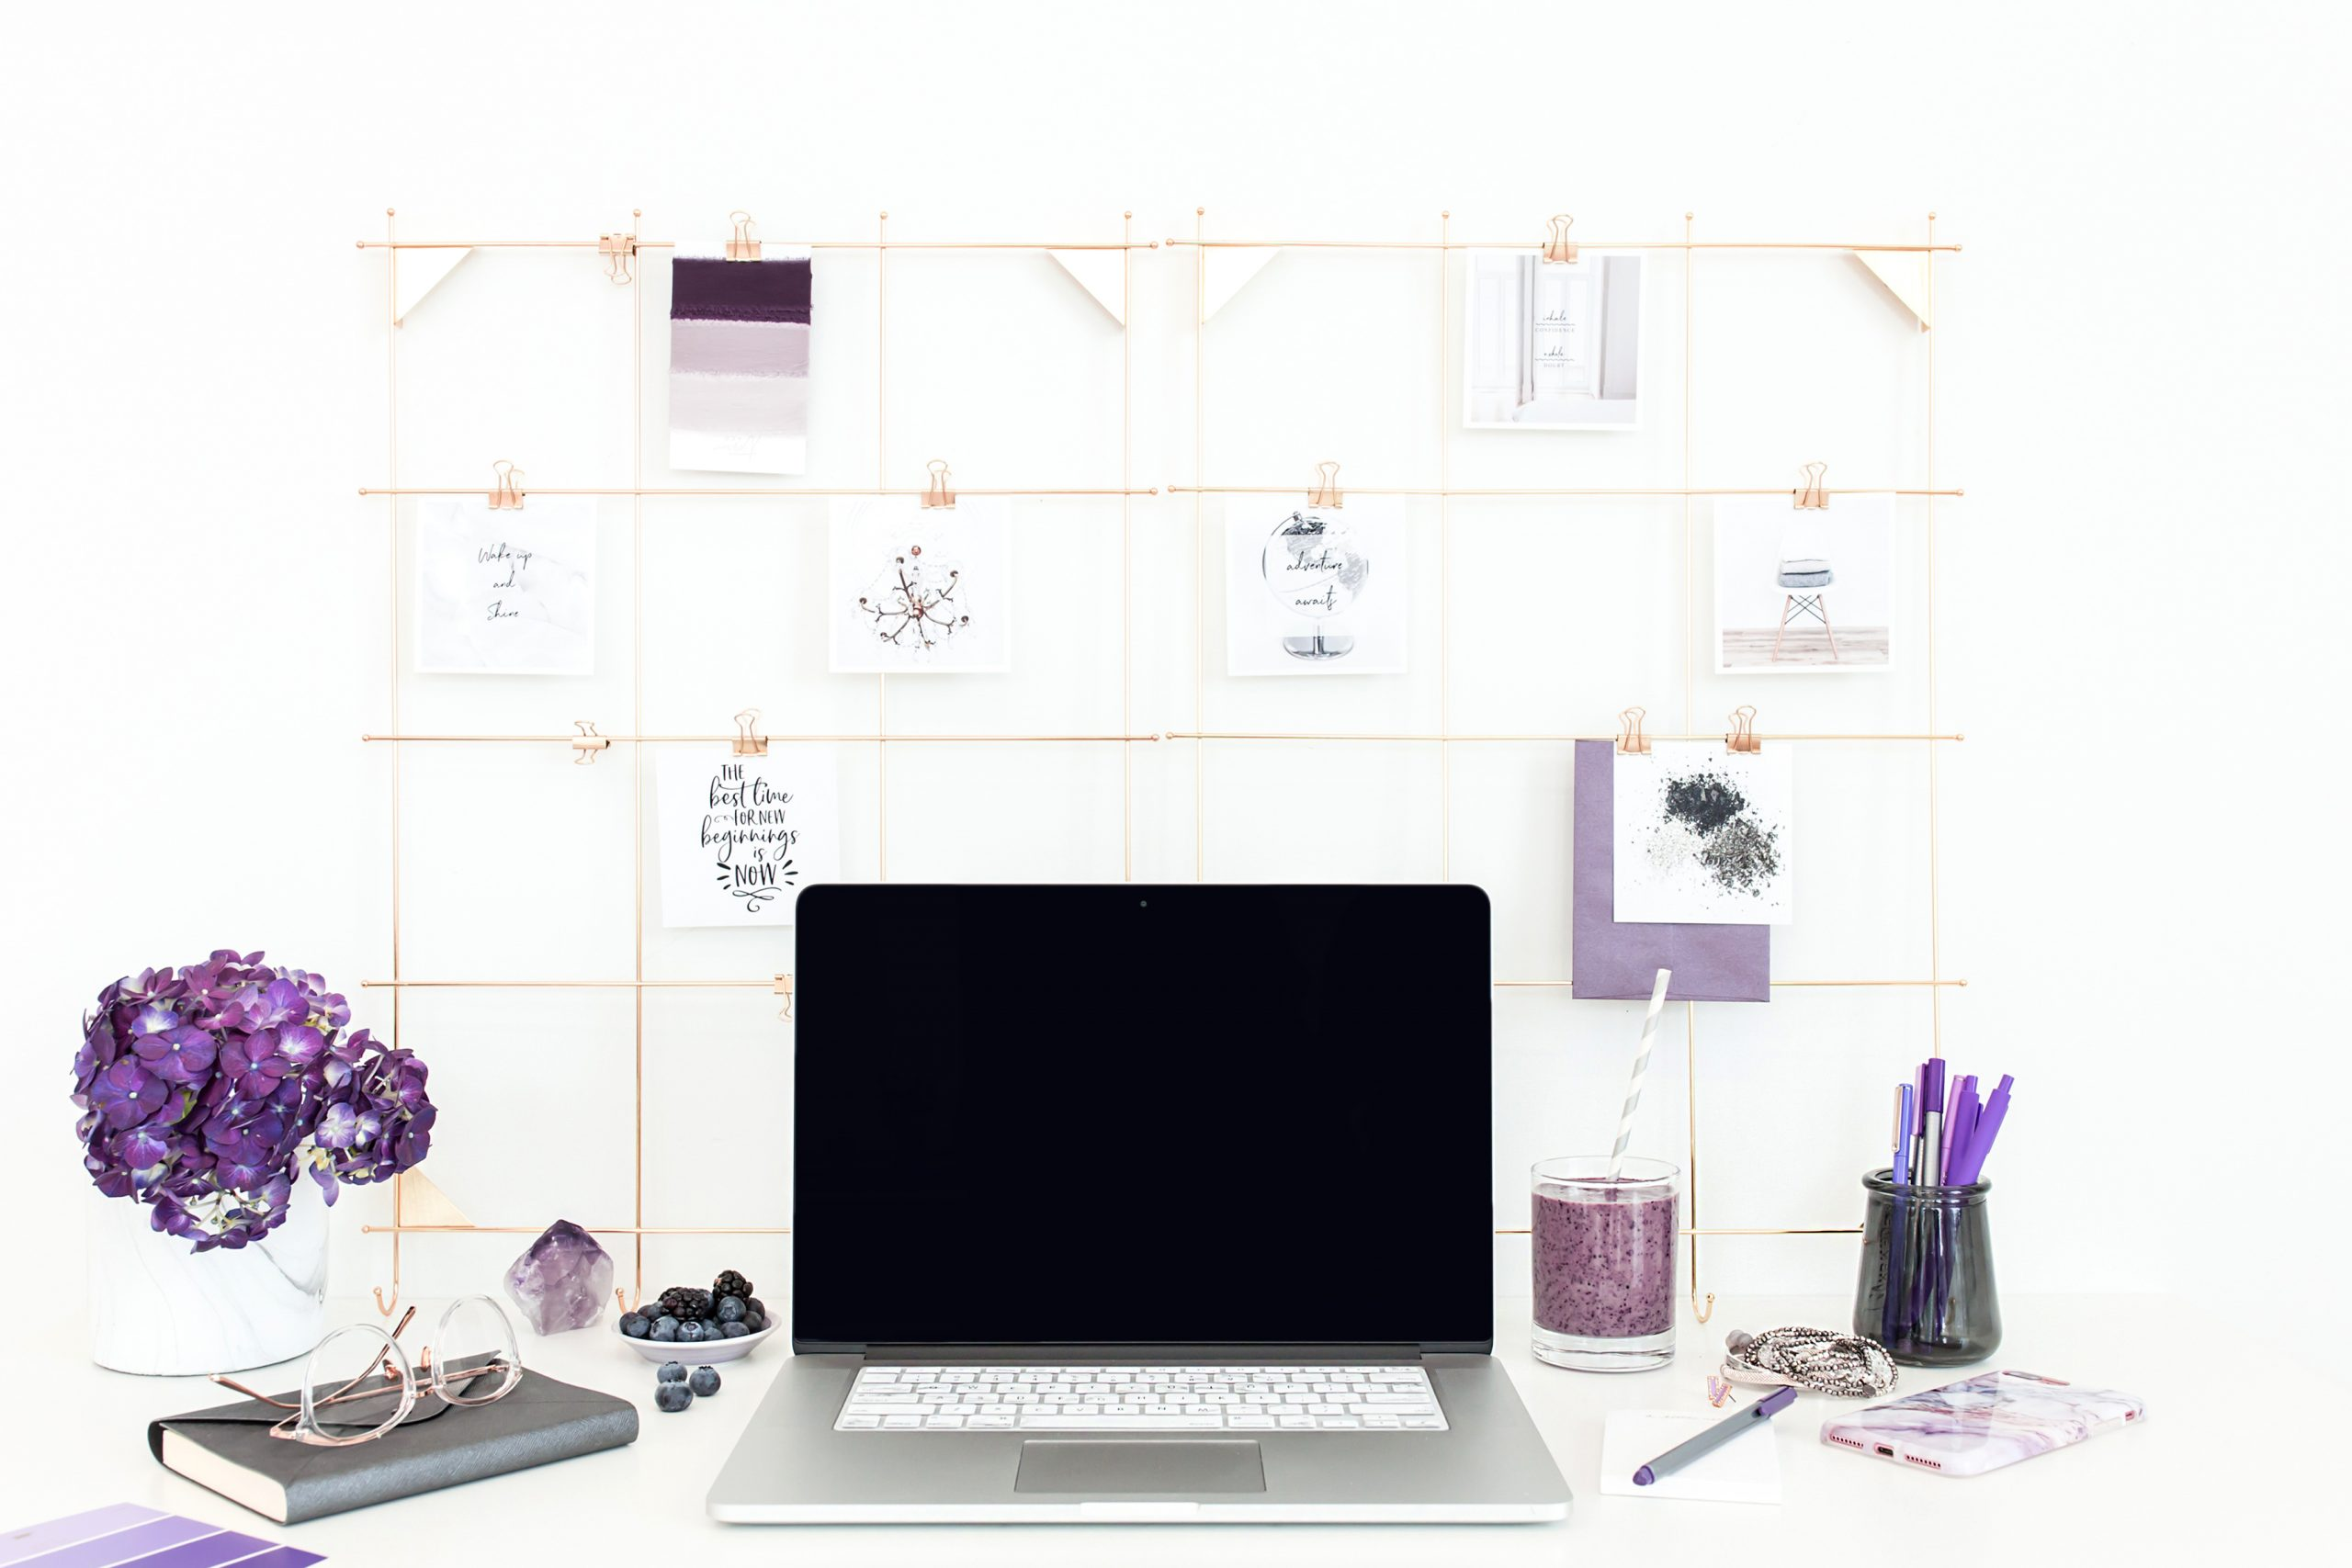 If you're sick of seeing your paper clutter everything and want a way to FINALLY manage your paper clutter at #home, these #ideas are great! Learn how to organize paper clutter using your extra wall space! They're not only fun, but a great way to finally get your #life organized the way you want it! #organization #momlife #mom #paper #declutter #family #organizing #bossbabe #office #officedecor